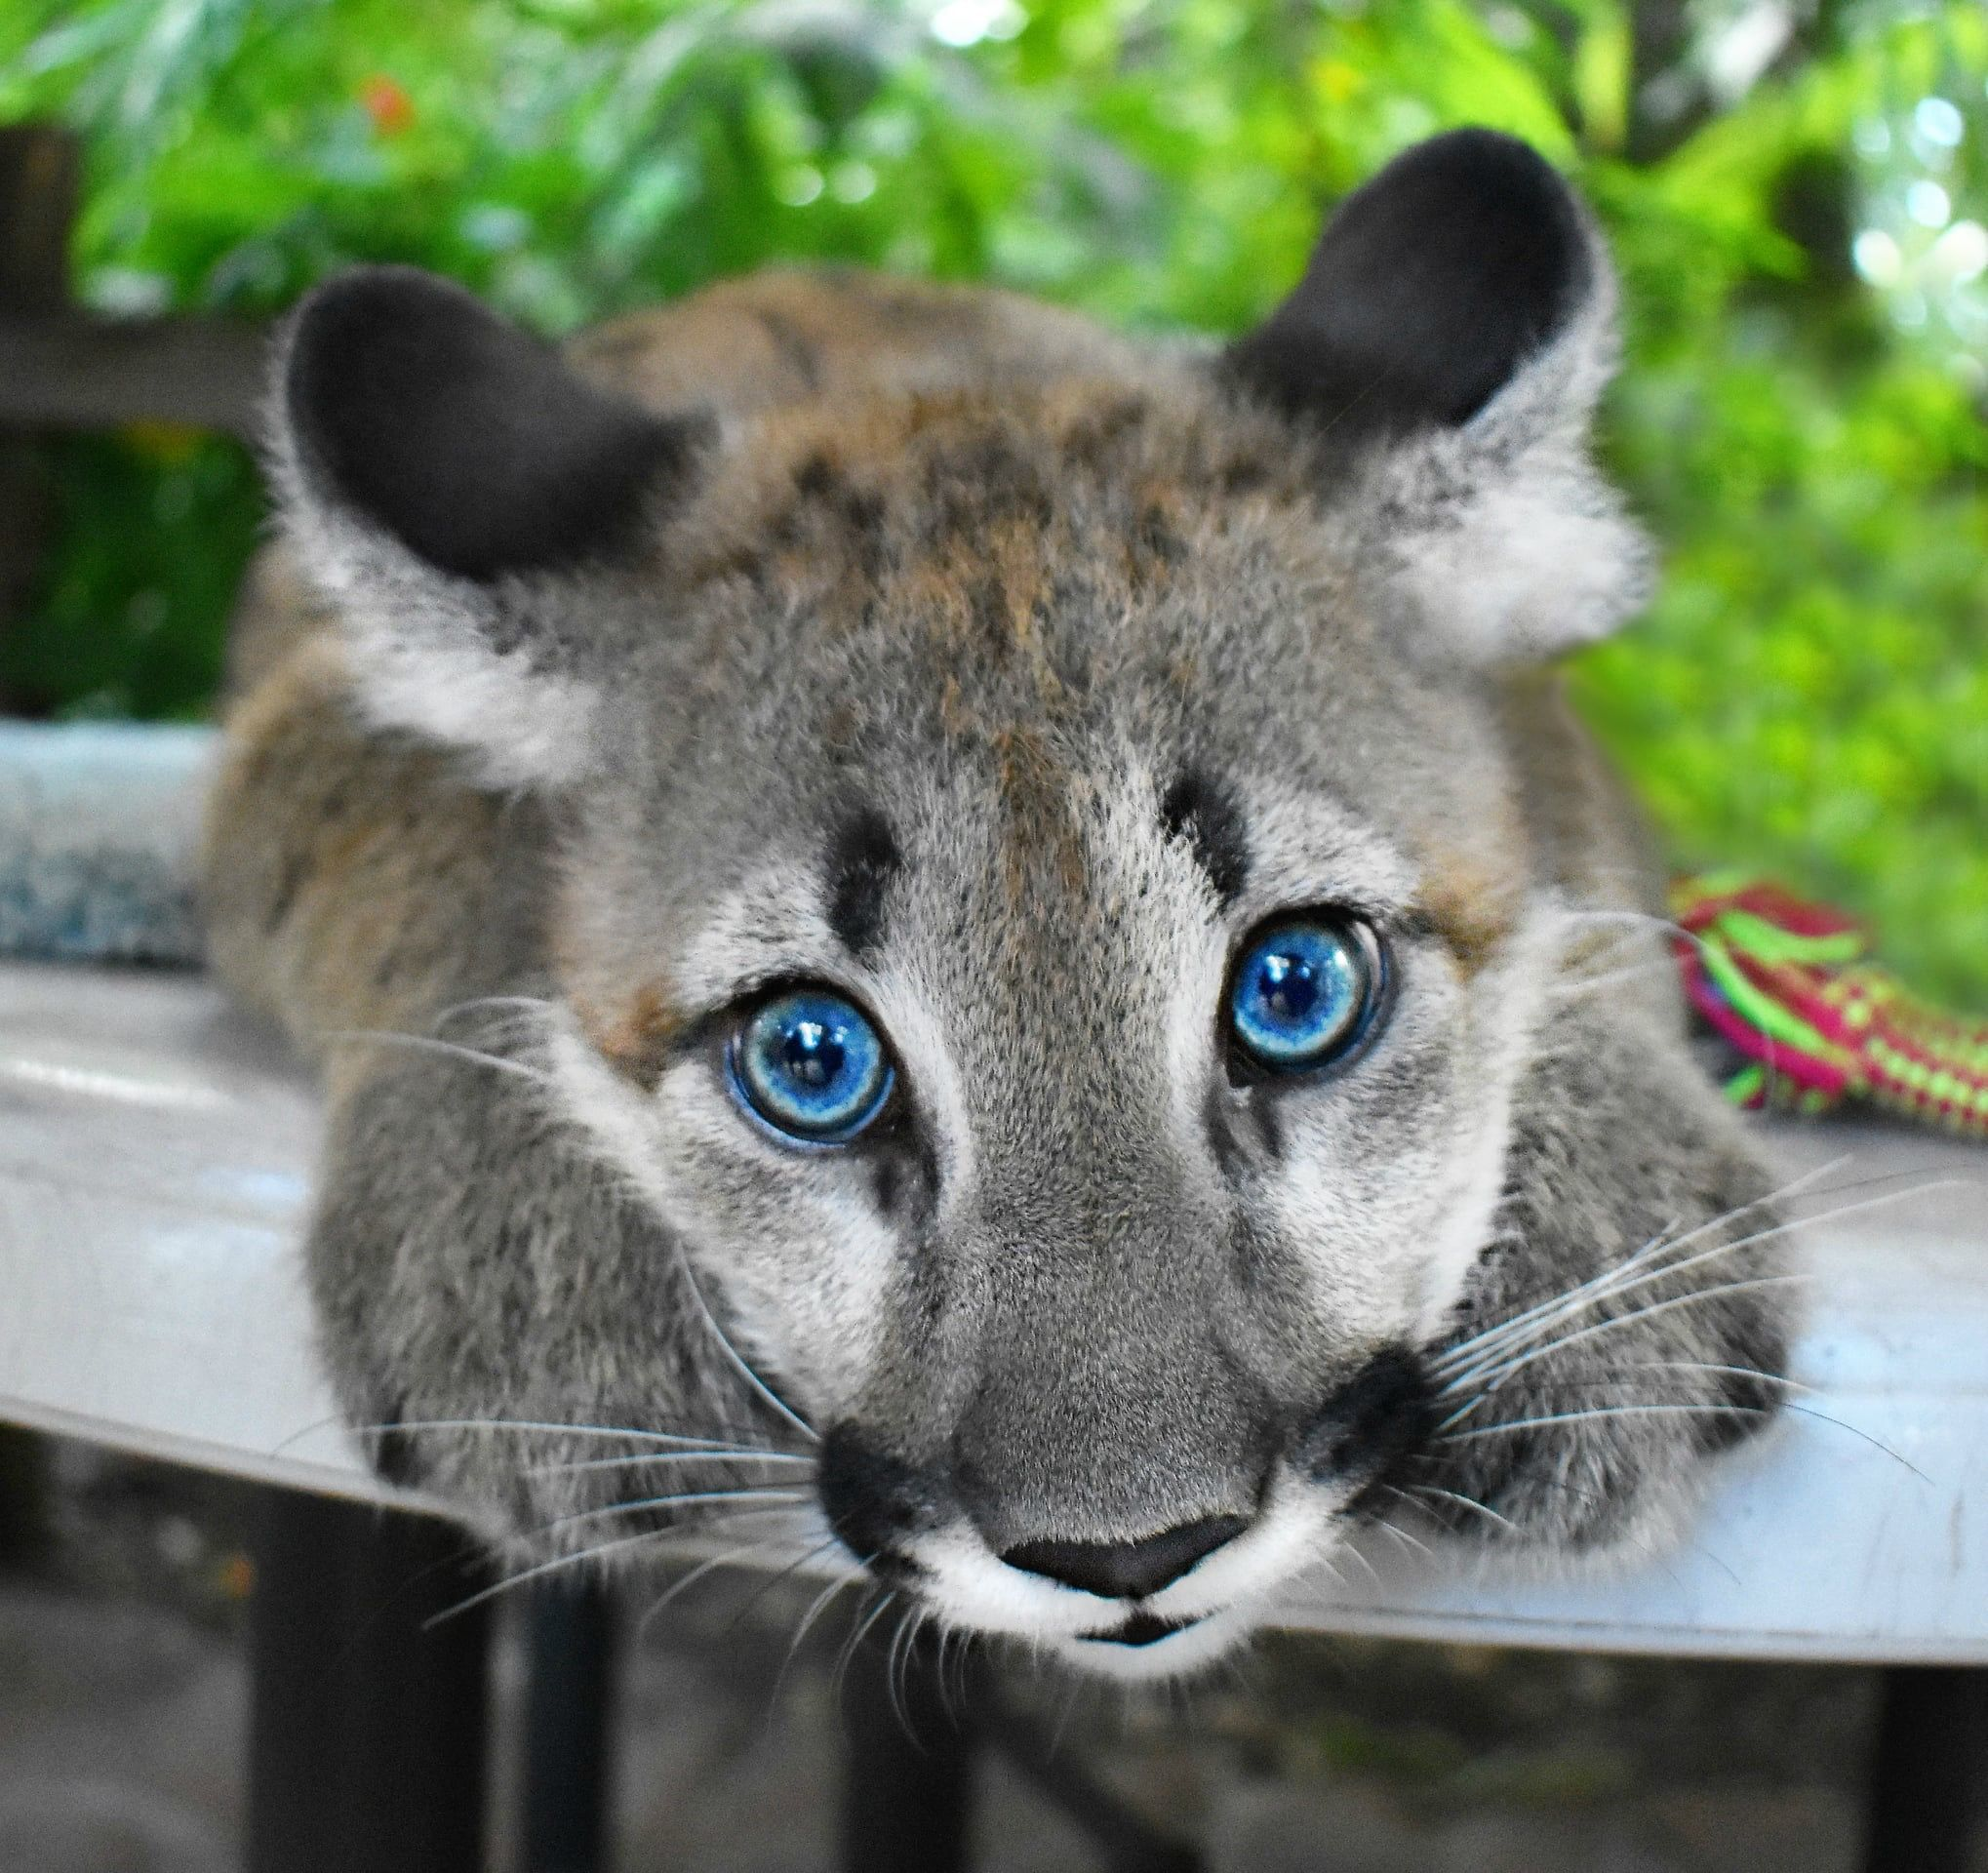 Best Cat Urday Would Be Coming To Meet Me Dcwildthings Panther